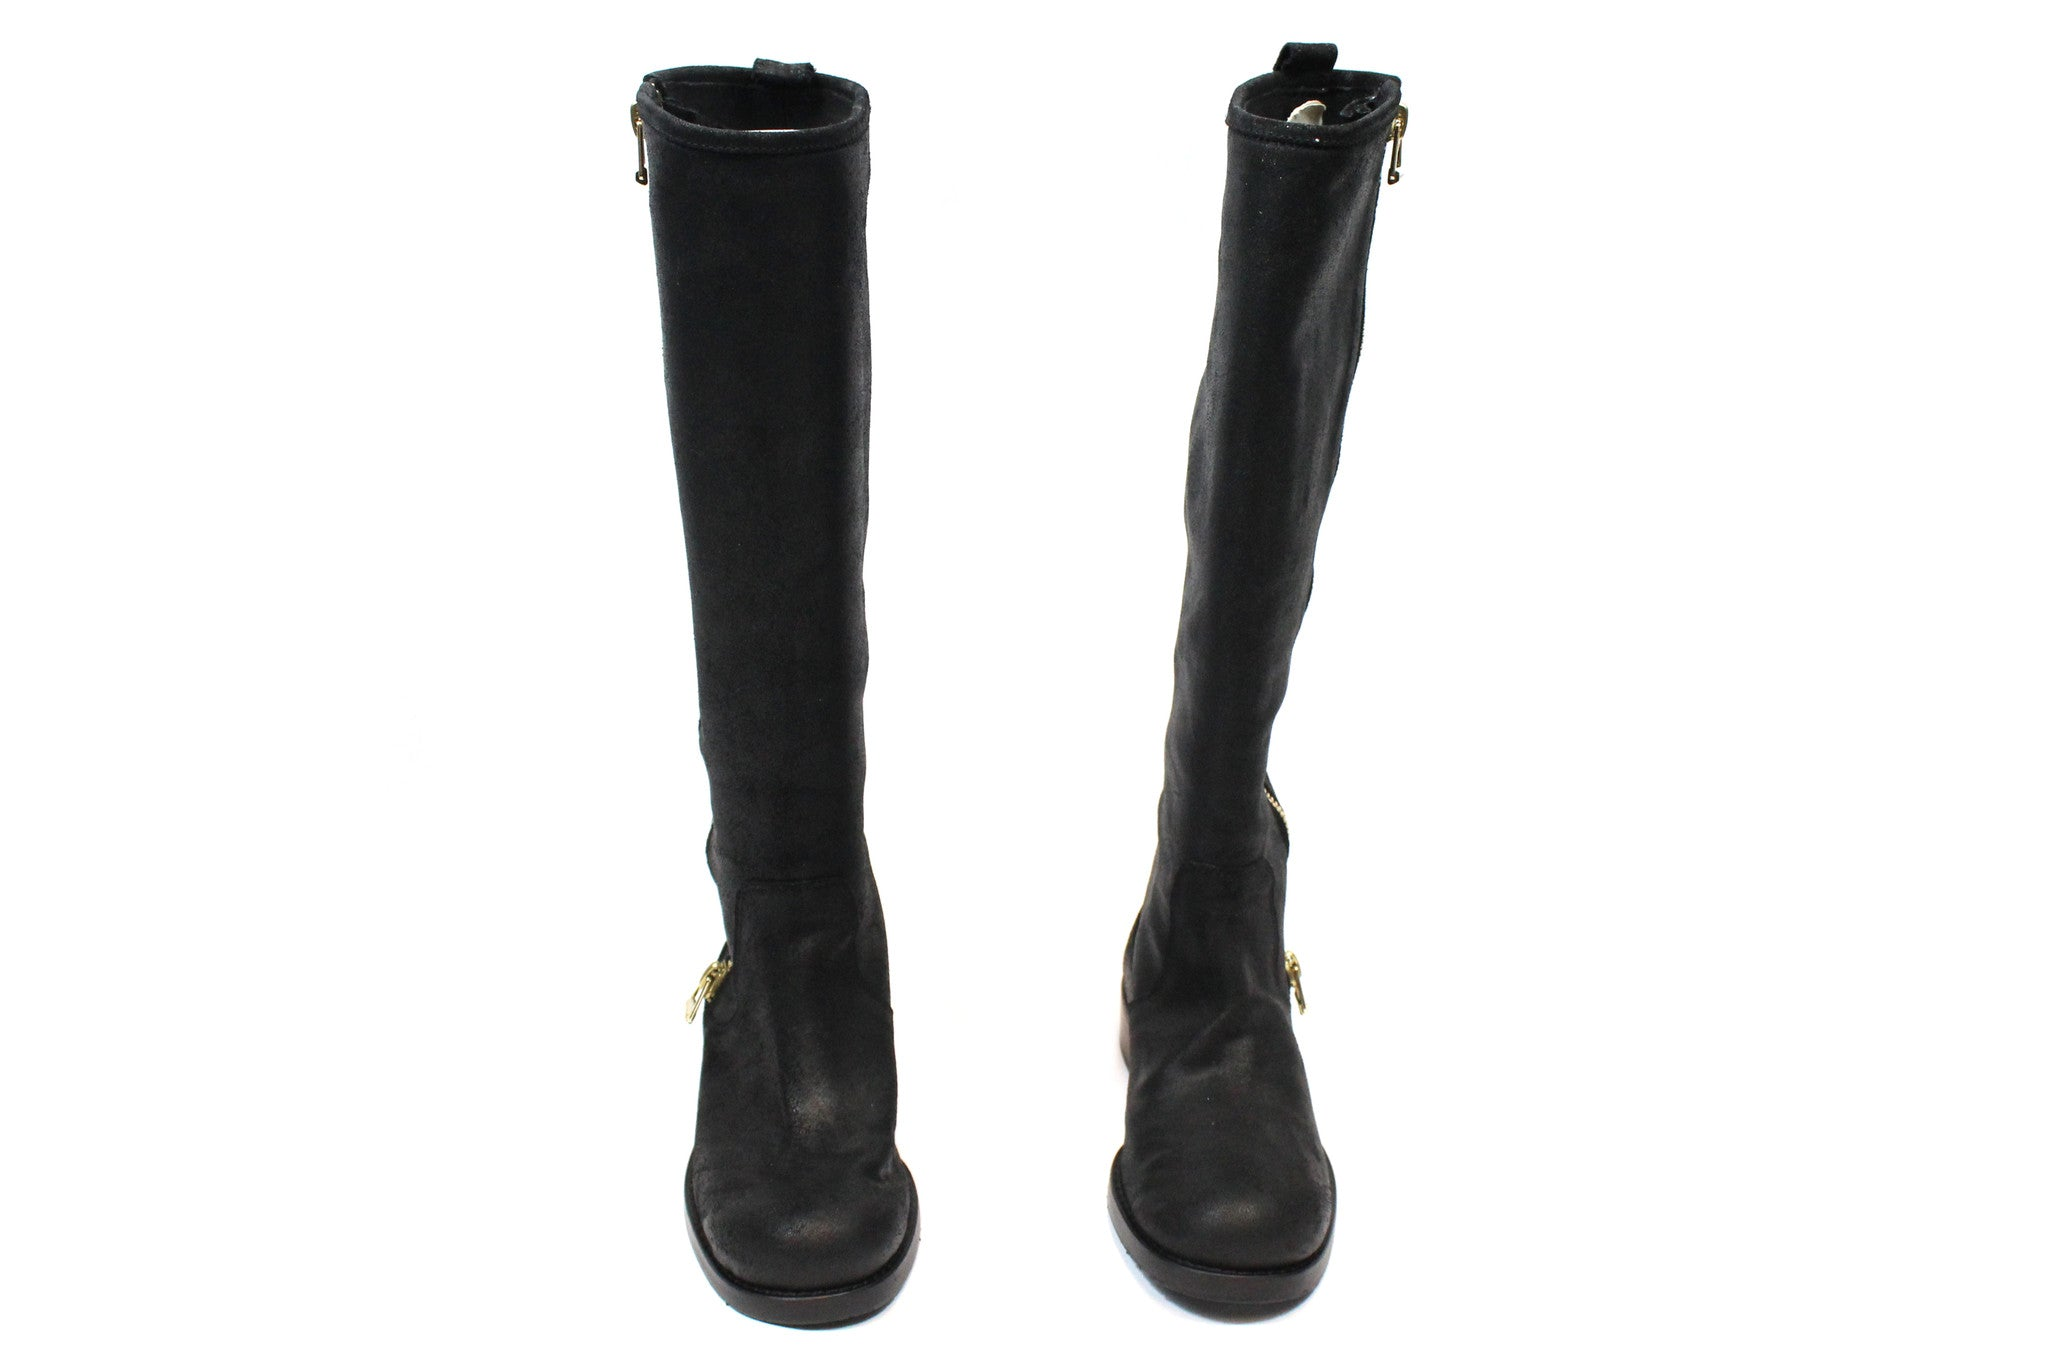 Jimmy Choo Suede 'Doreen' Zip Knee-High Flat Boots (Size 35) - Encore Consignment - 2